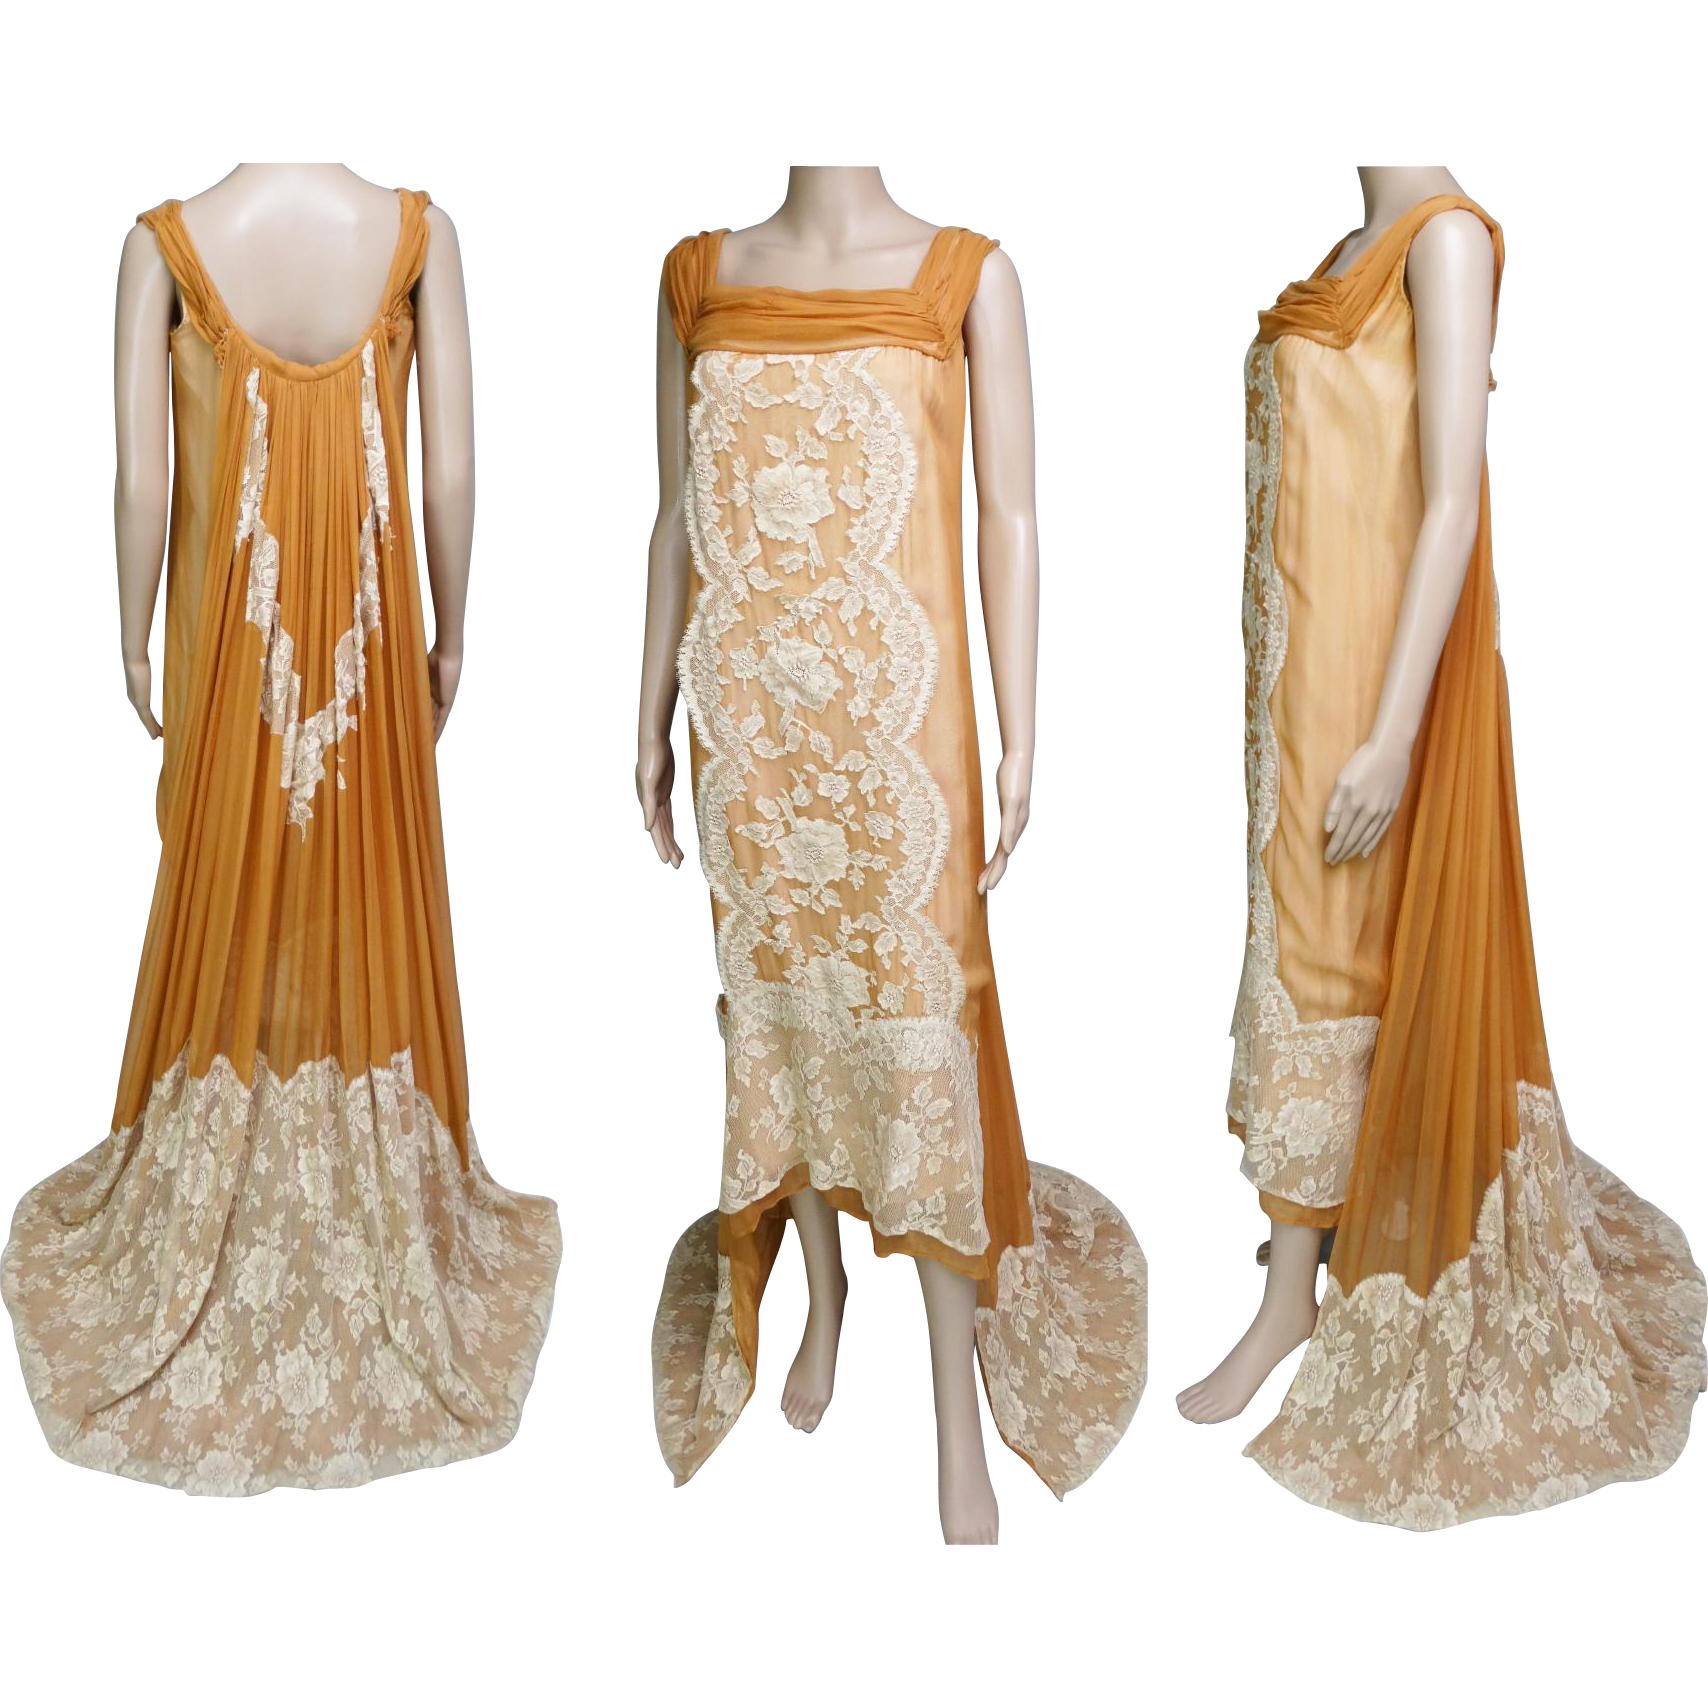 1920s dress vintage 1920s dress roaring 20s dress for Roaring 20s wedding dress